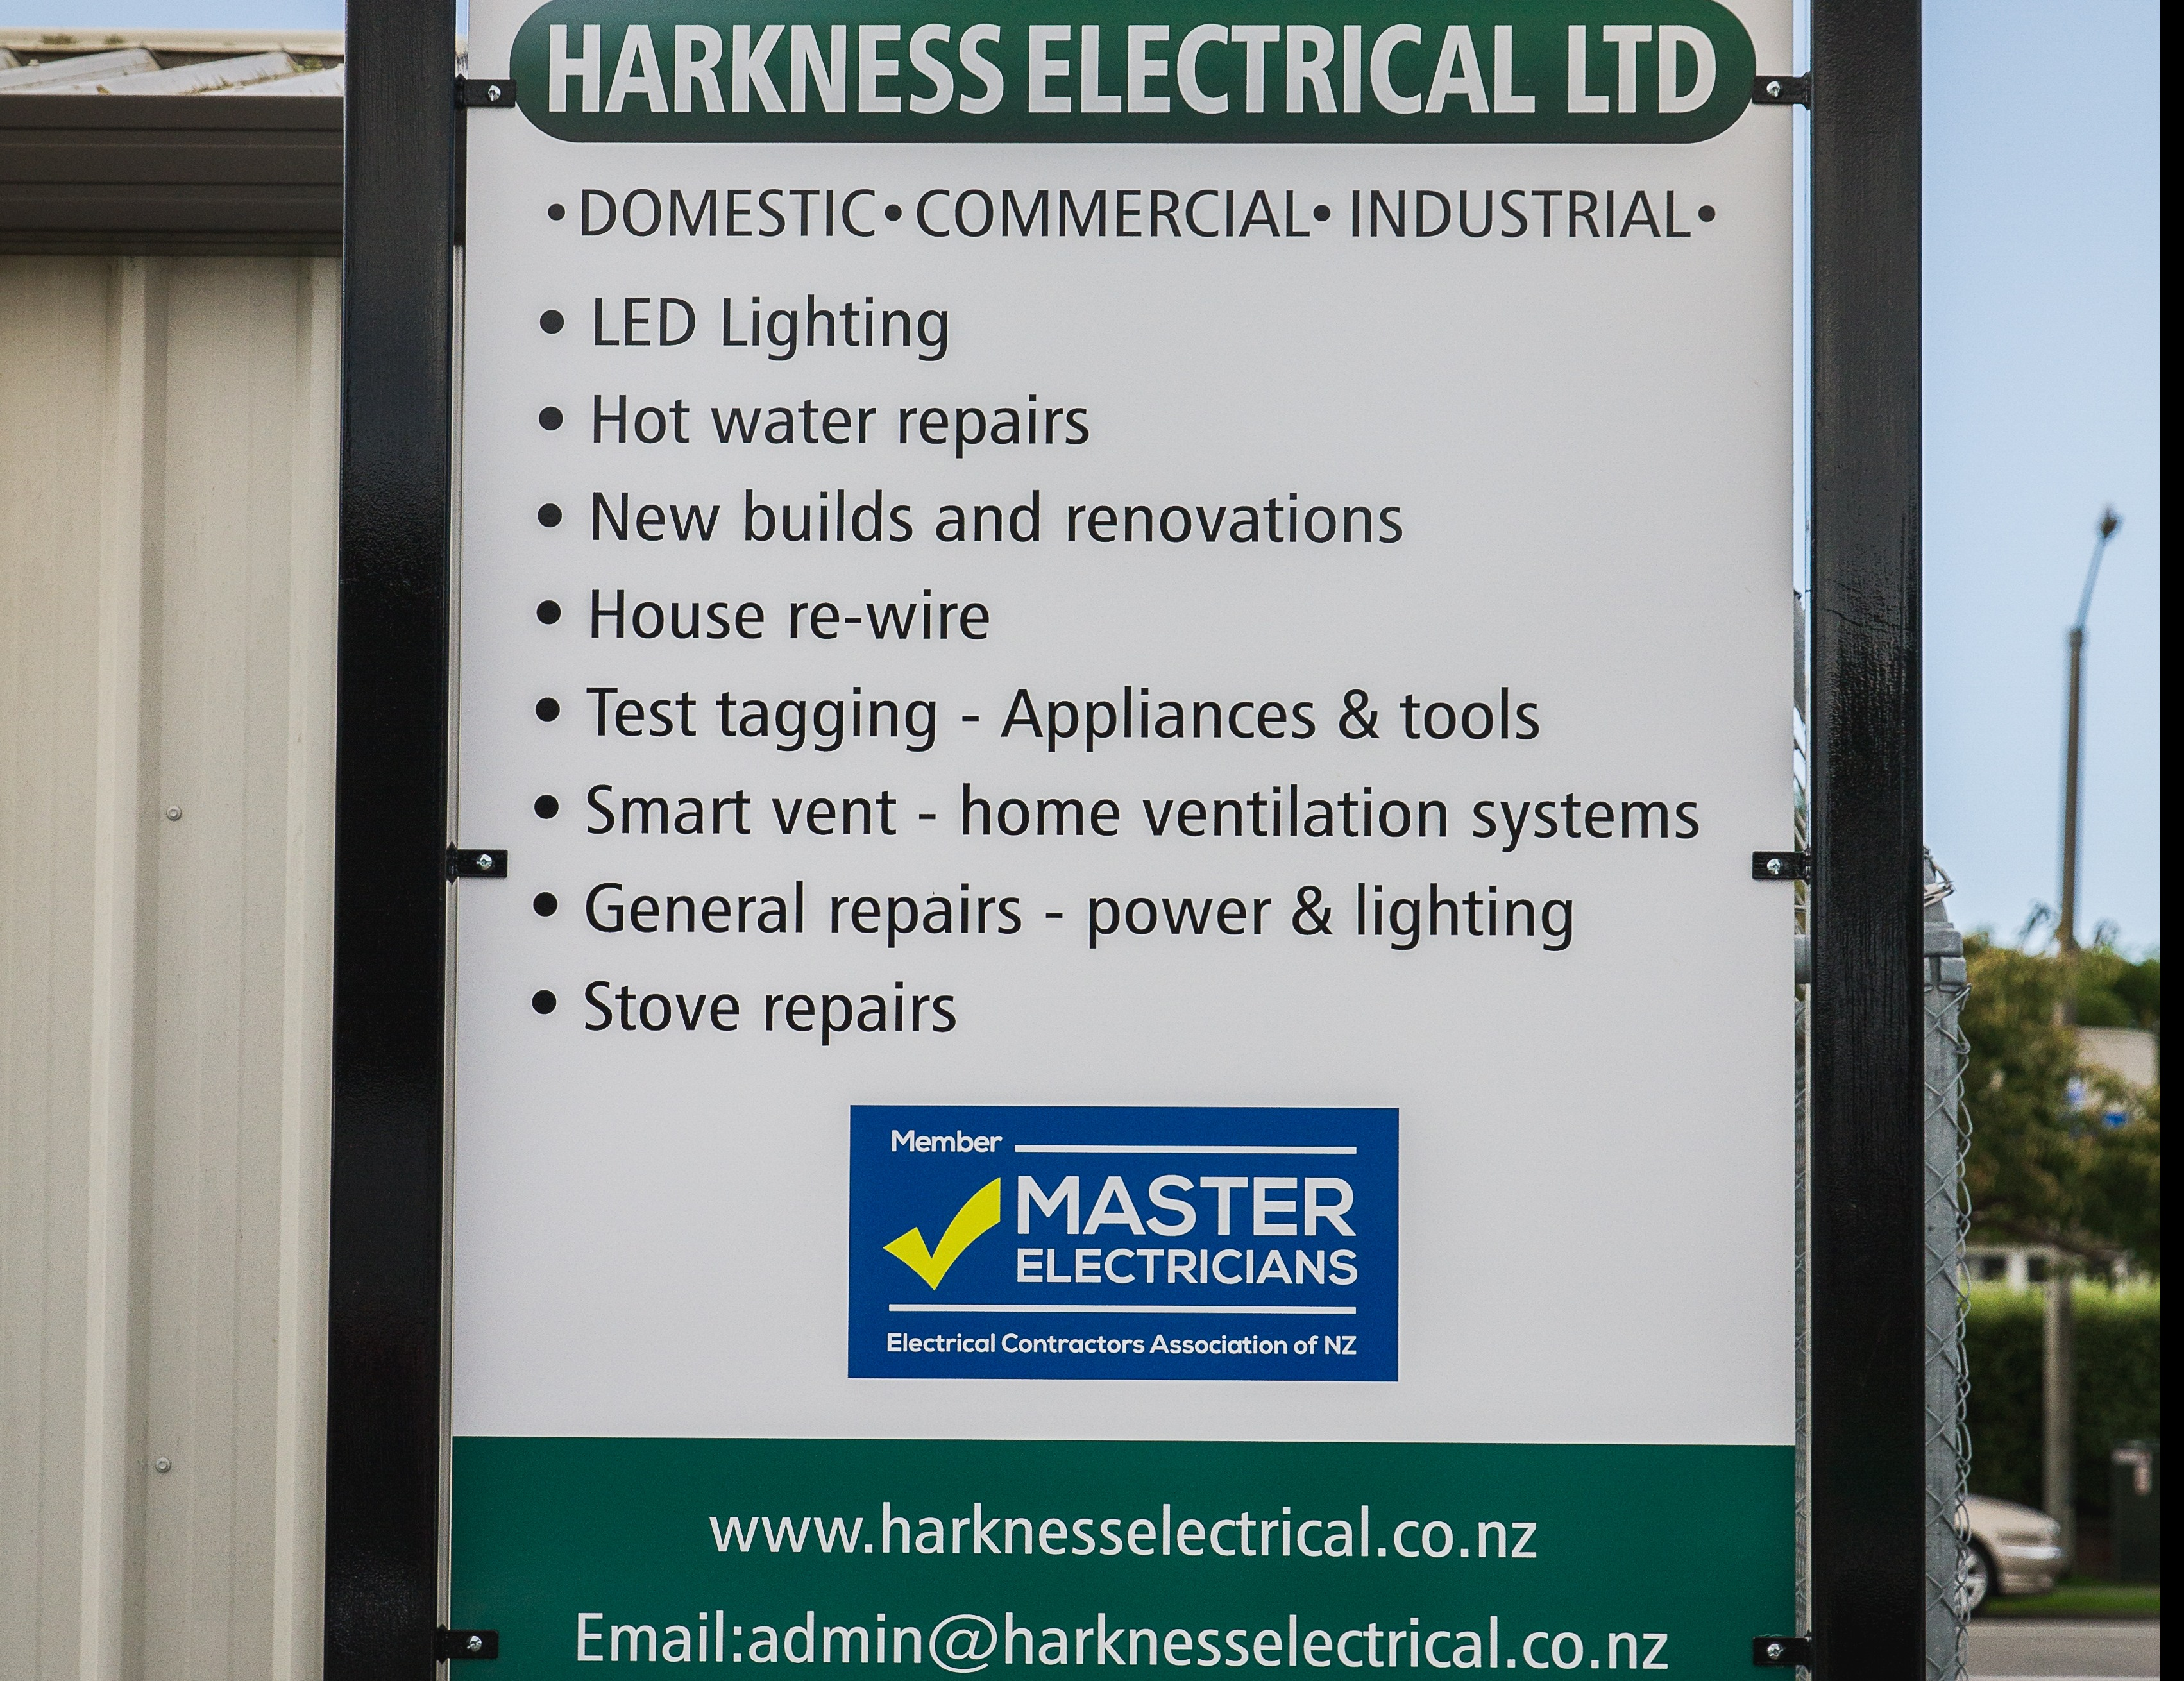 Harkness Electrical